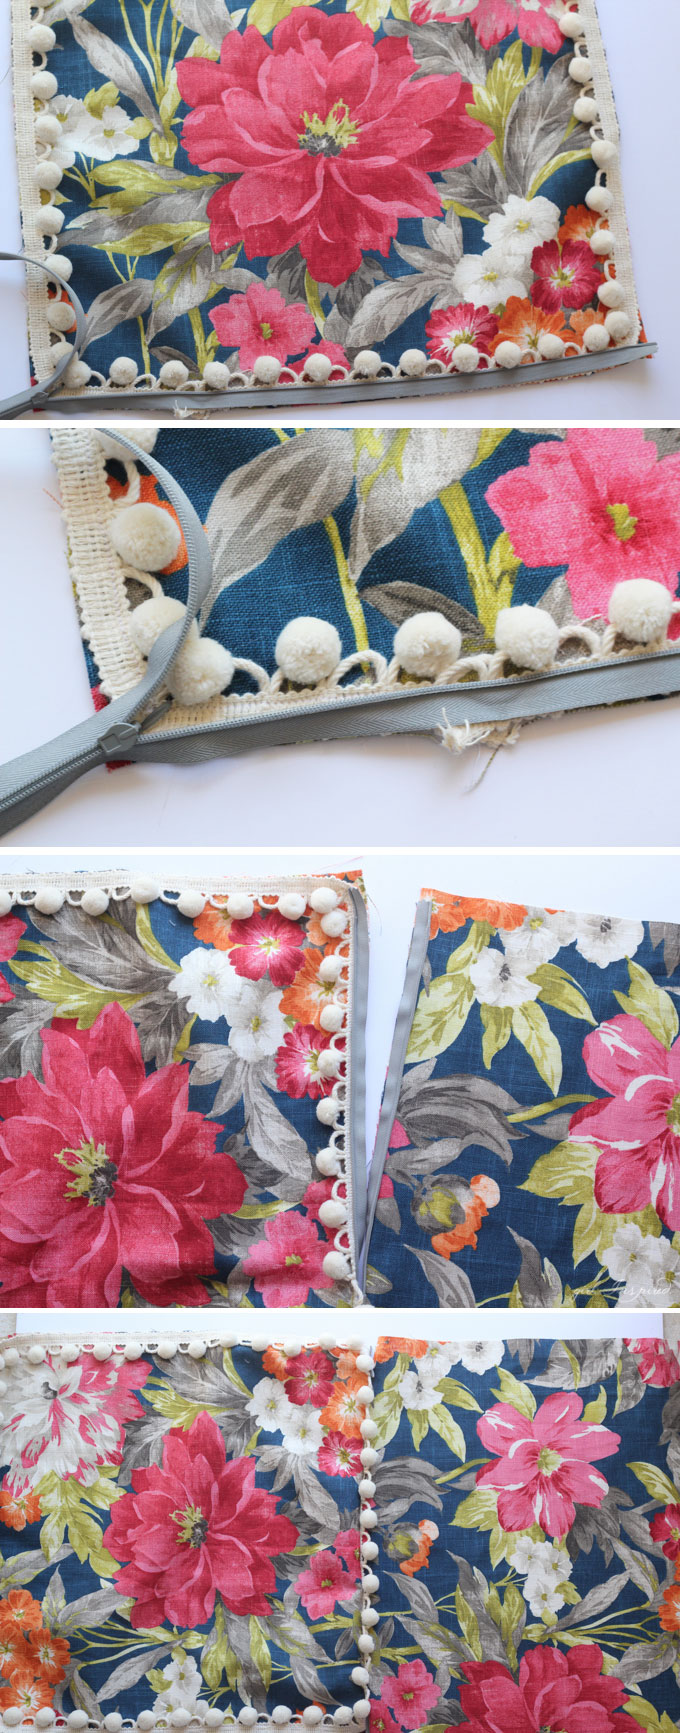 photo collage of step by step sewing a zipper into blue floral pillow cover